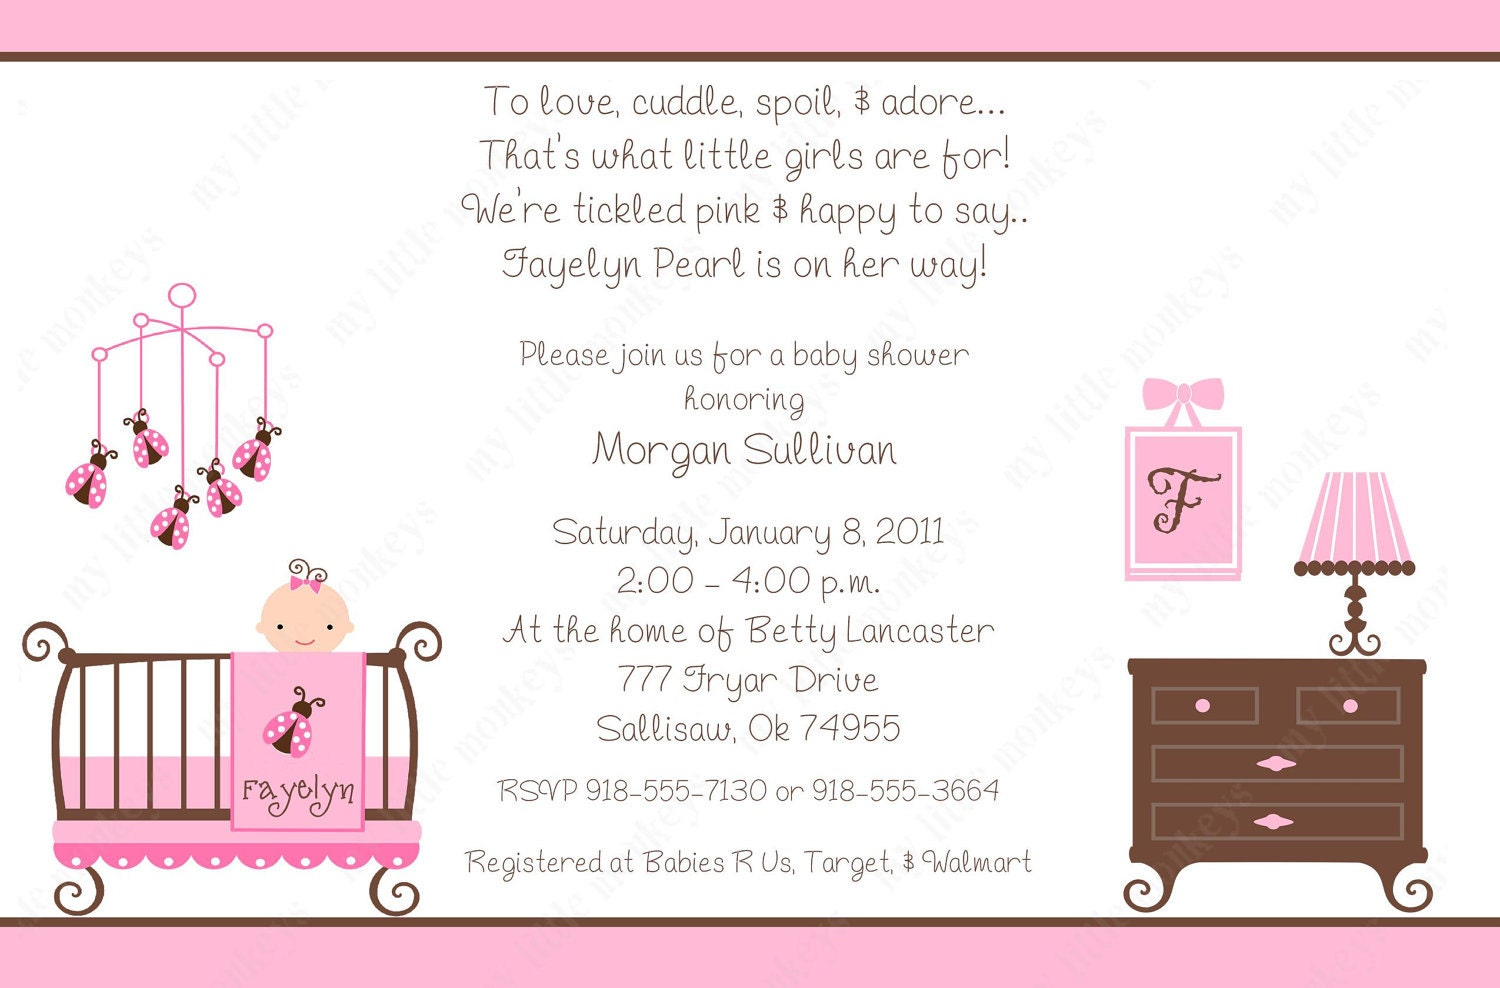 Invitation Wording For Baby Shower for amazing invitations example